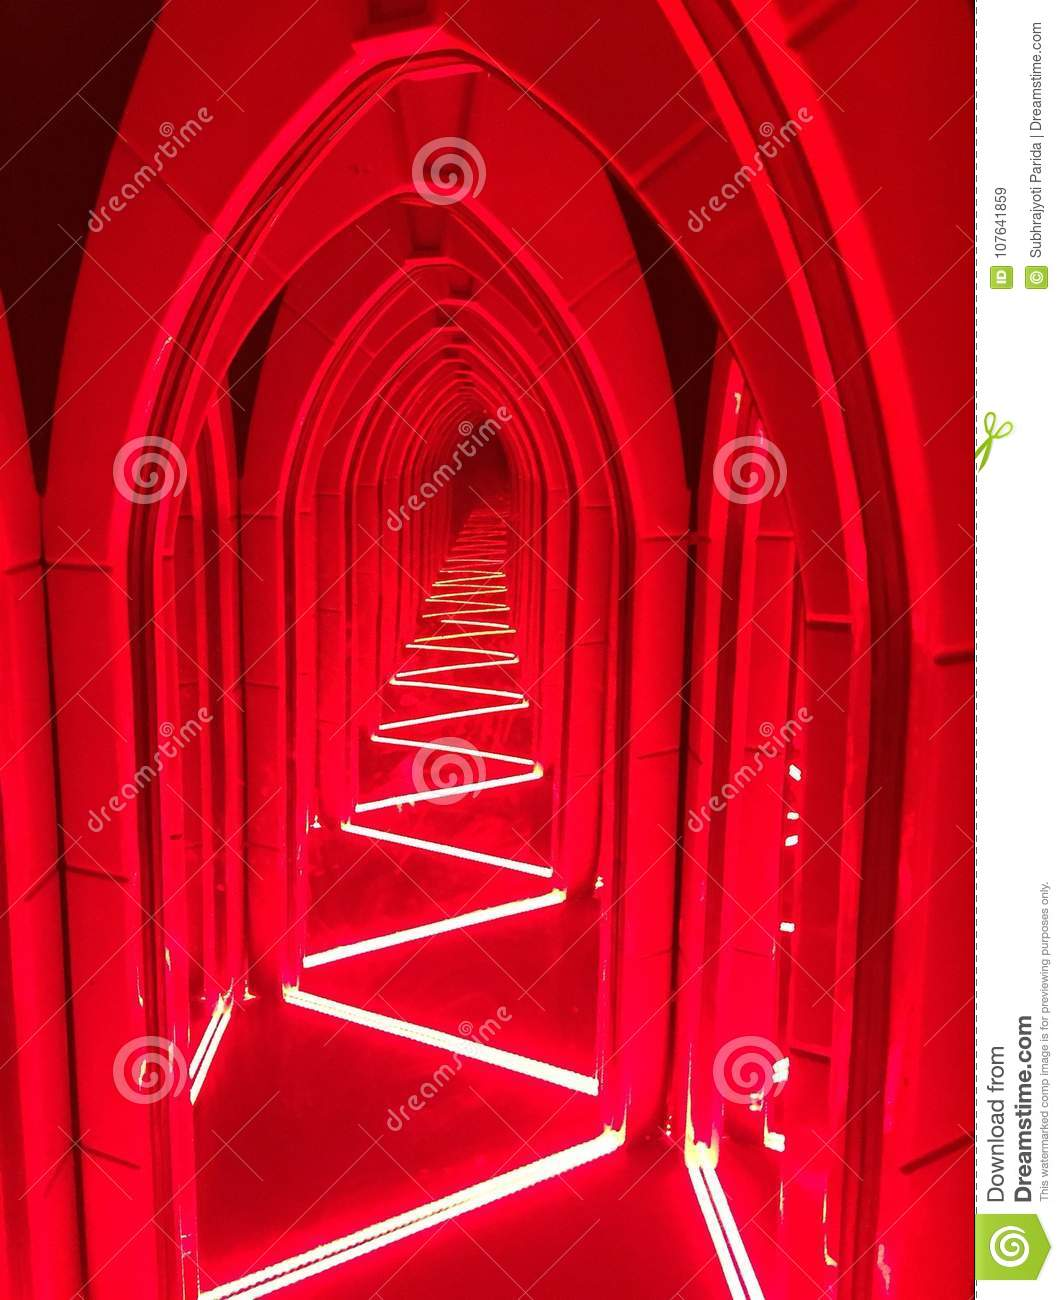 A hallway lit with bright red light